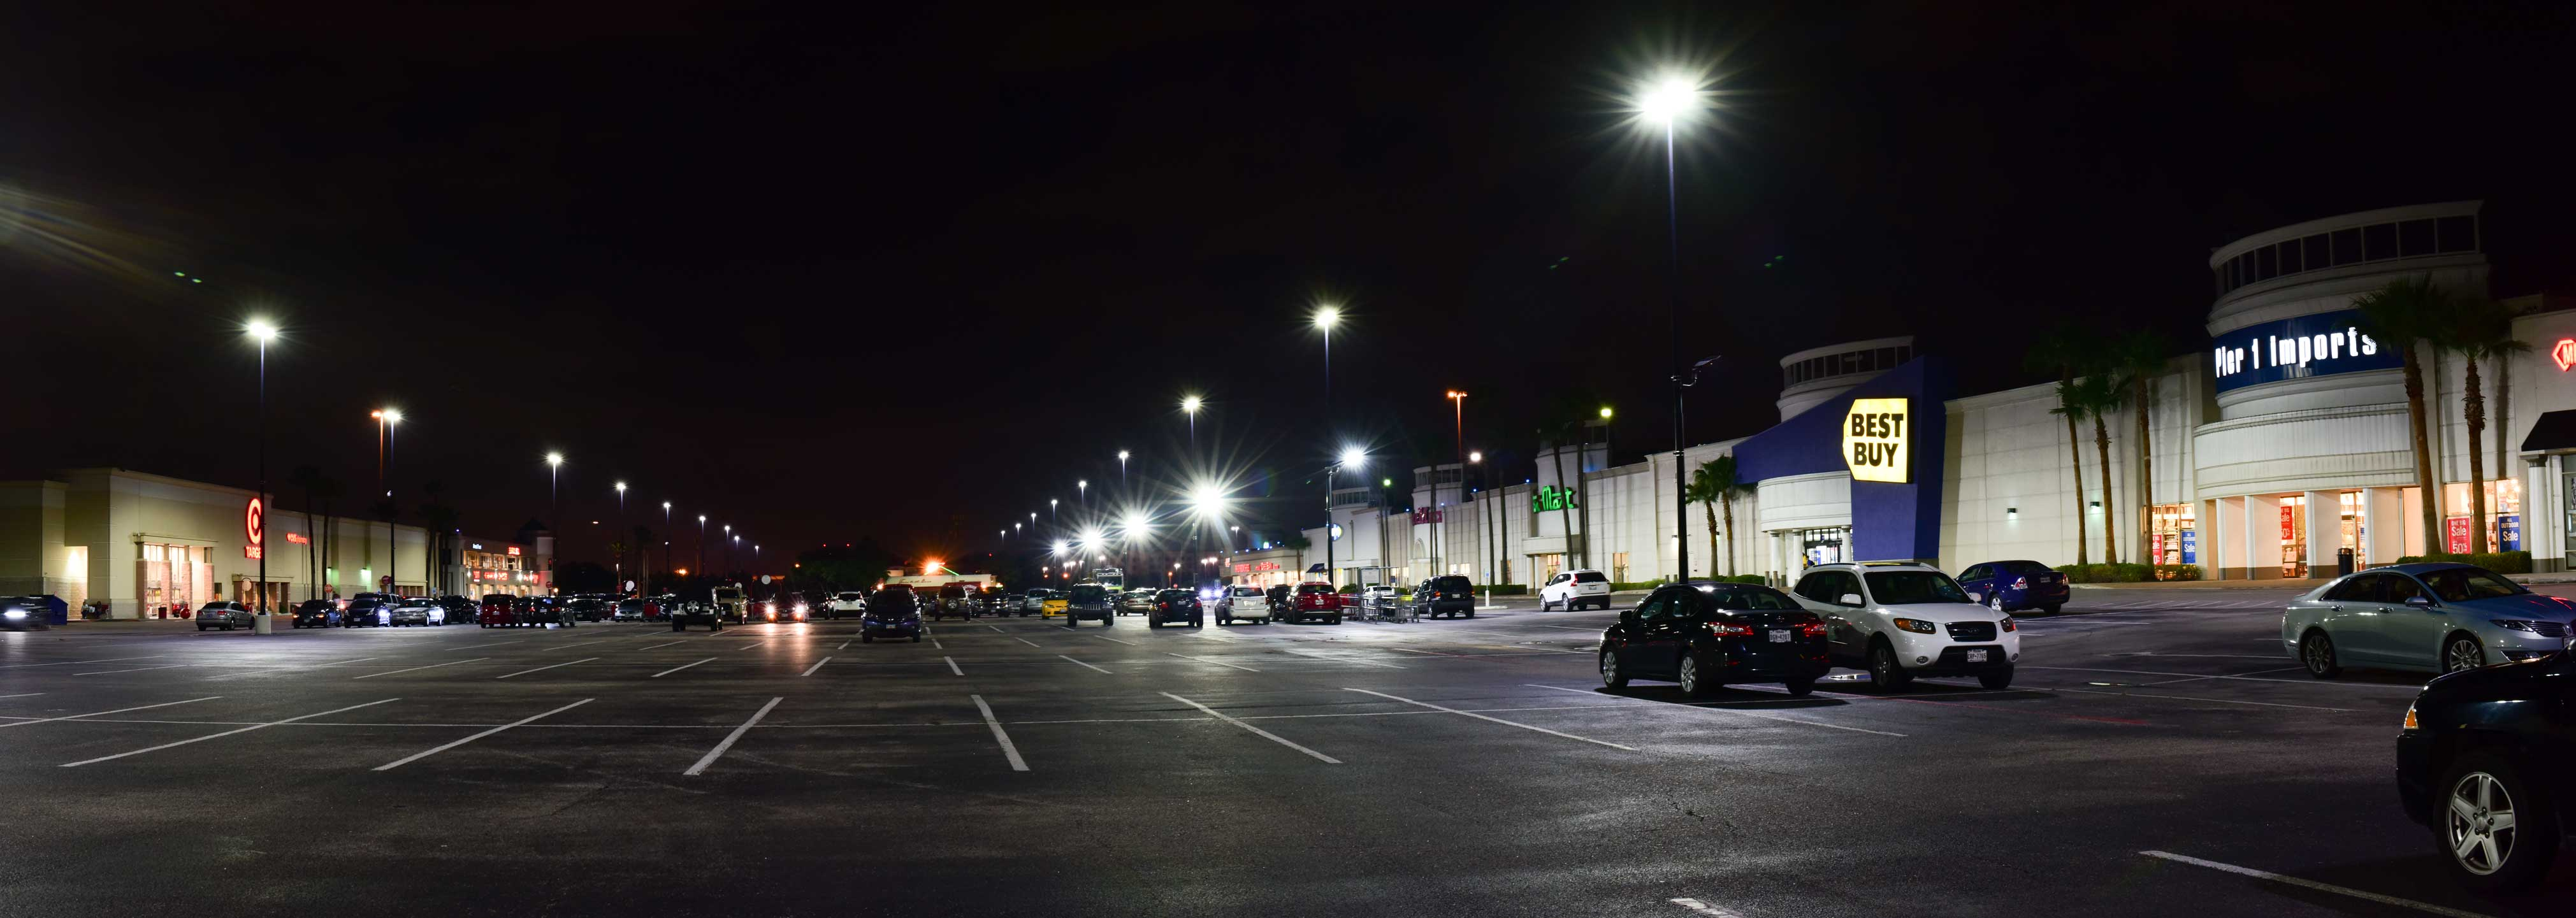 xtralight, meyerland plaza, outdoor, led, viento